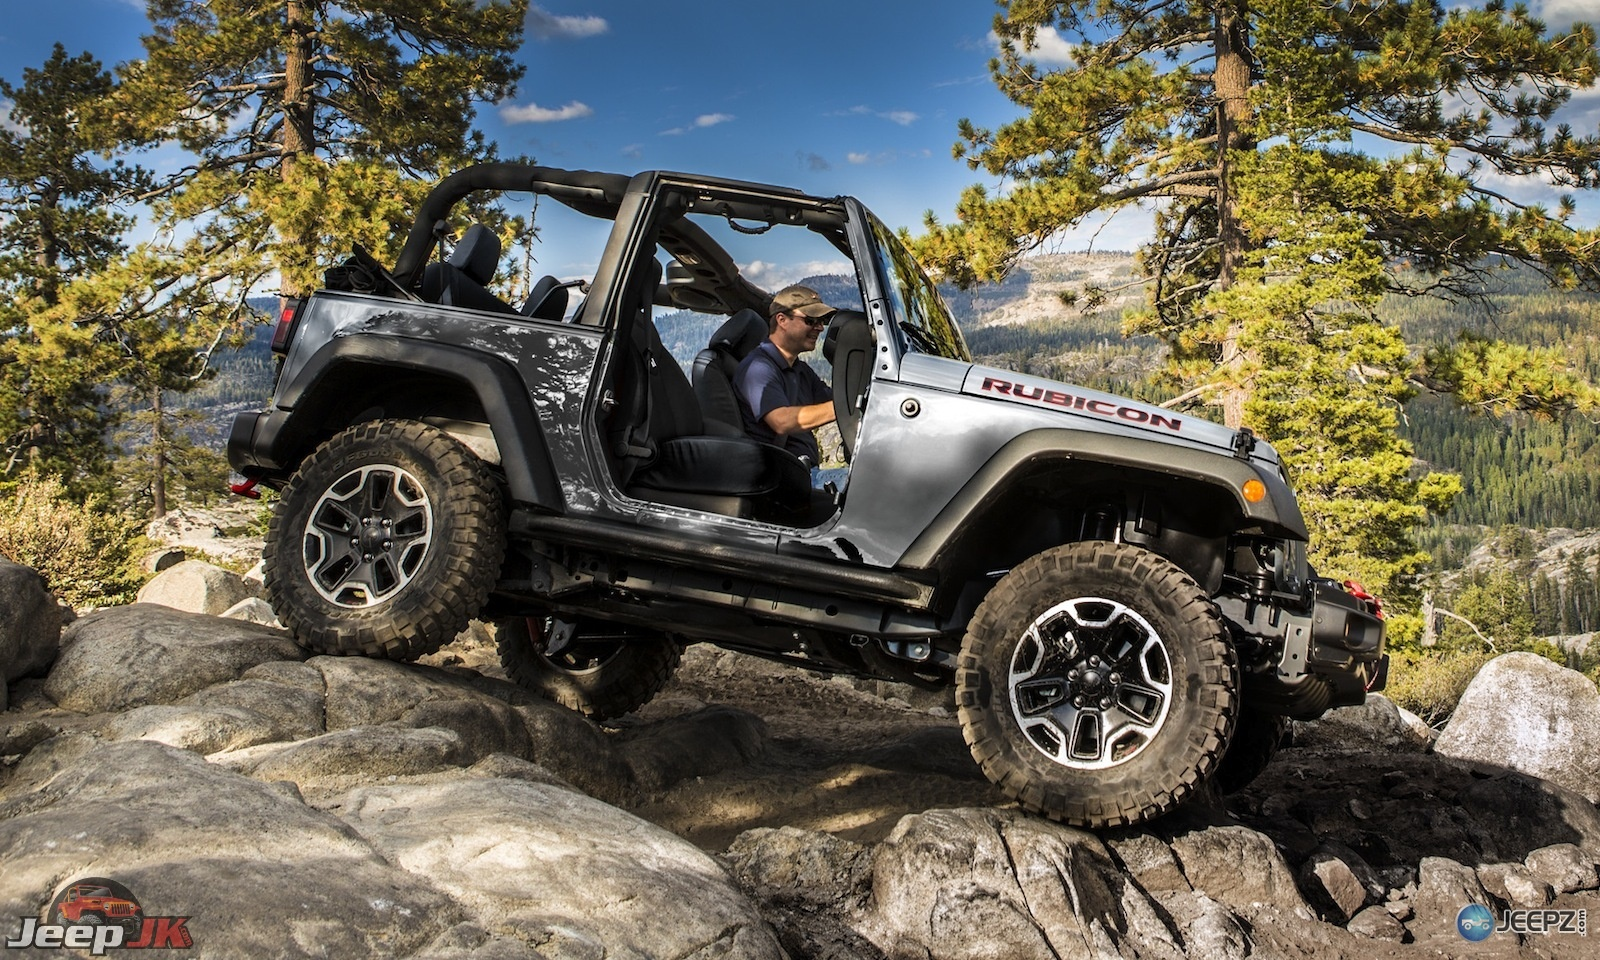 New Model For 2014 Jeep Wrangler Rubicon X